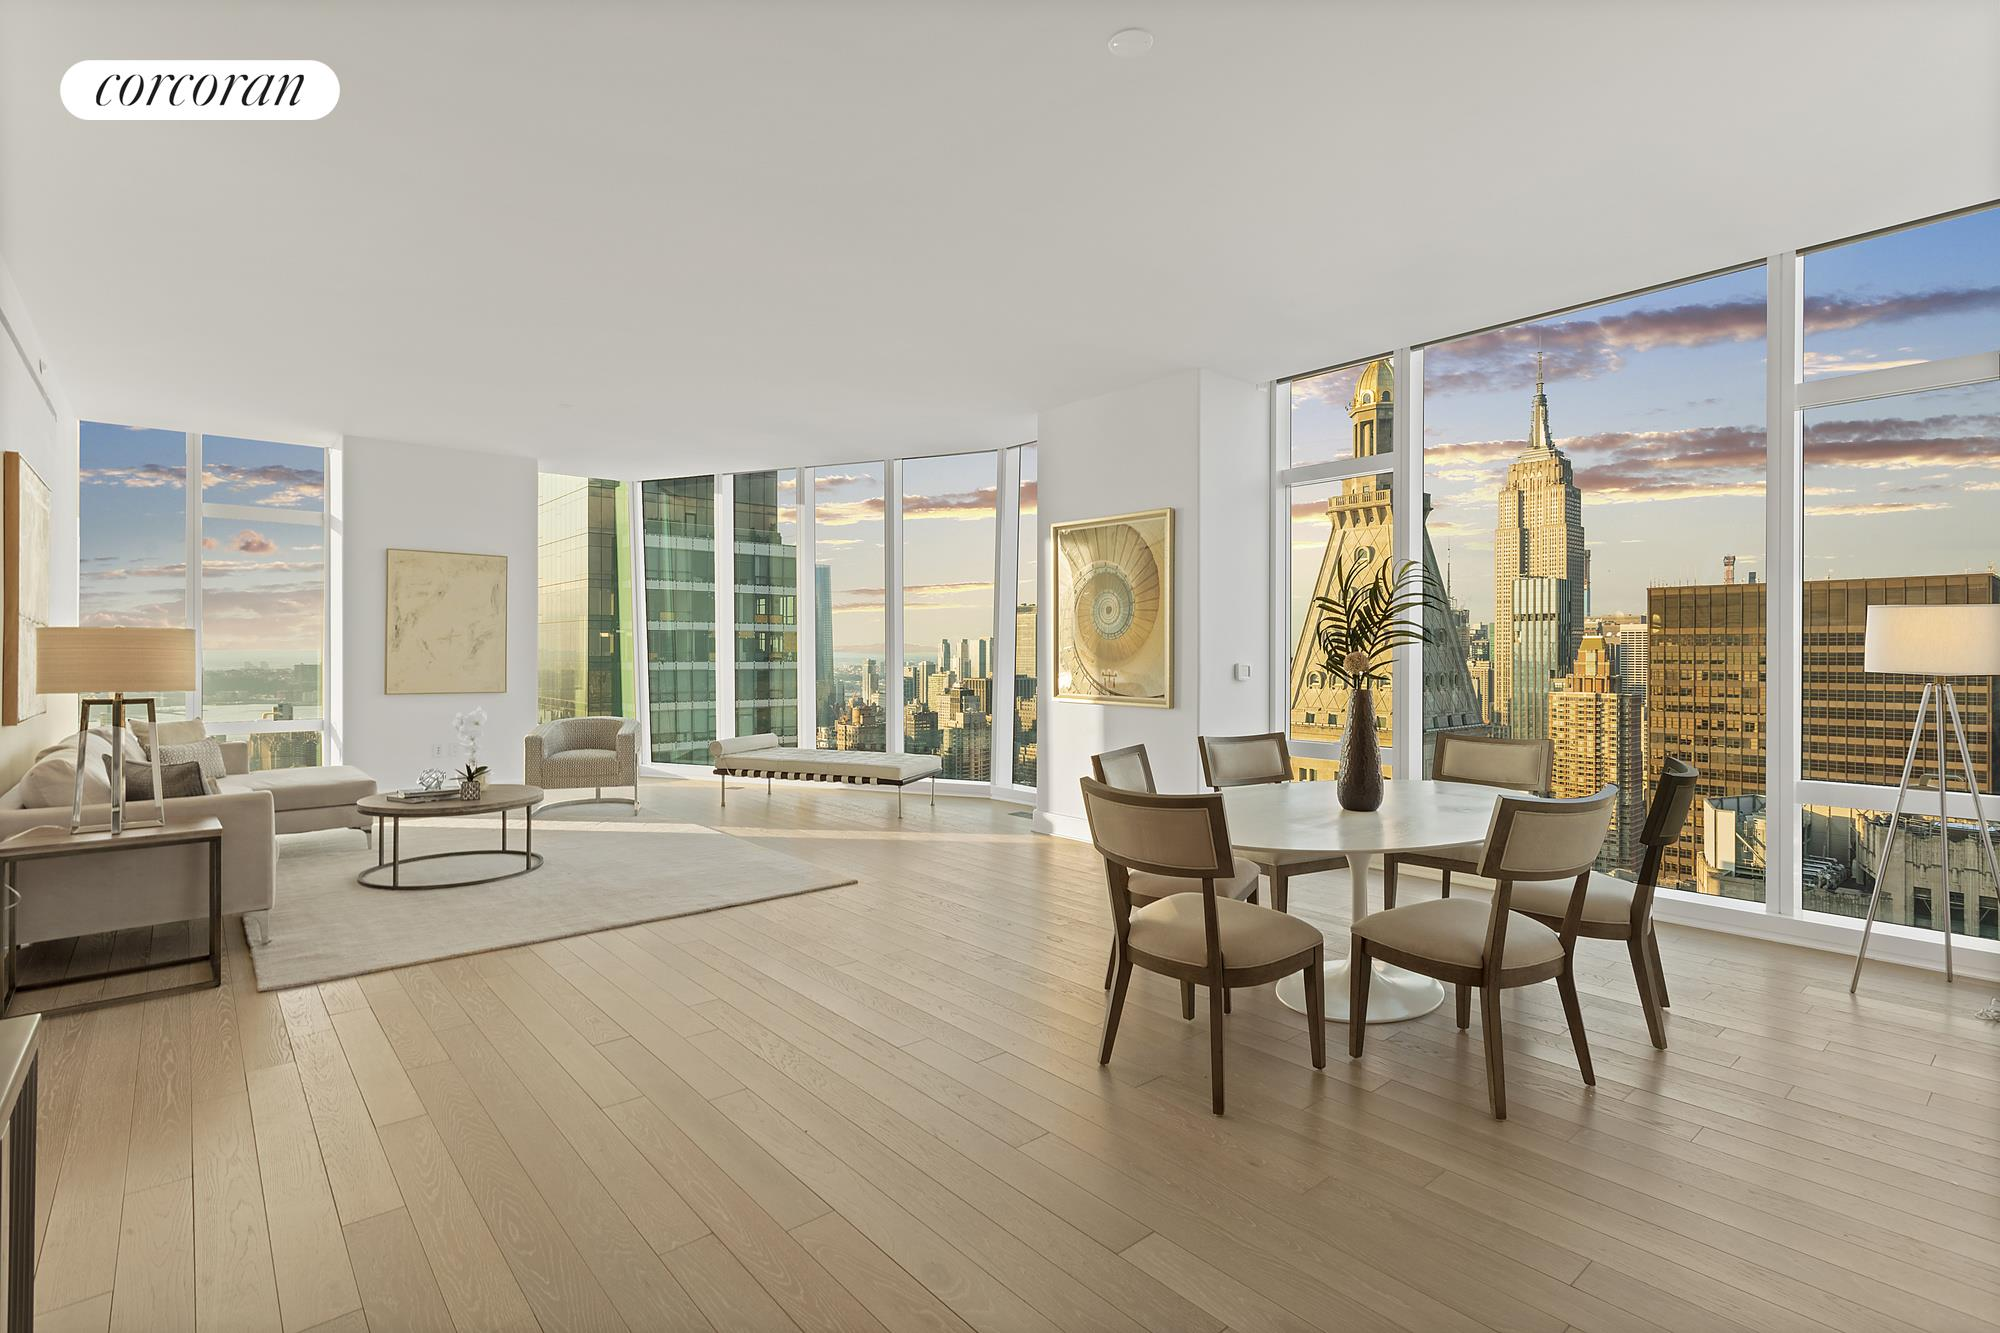 Be the first to live in this sprawling loft-like 3 bed, 3.5 bath with Penthouse-quality views of both uptown and downtown Manhattan.  Every major landmark can be seen from this 2505sqft, 51st floor aerie: Empire State, Chrysler Building, Freedom Tower, East River, Hudson River,and every major bridge can be delightfully observed from this quiet, luxurious residence. A 4th bedroom with North-facing views is easily added without compromising the floorplan.  Understated, yet sensationally conceived interiors by Martin Brudnizski Studios, 45 East 22nd perfectly embodies the pre-war elegance of the Flatiron neighborhood with modern 5-star amenities. There are over 10,000sqft of amenity spaces, such as a 3000sqft fitness center by the Wright Fit, basketball court, playroom, stroller parking, entertainment lounge, the crown jewel Upper Club, which is a 54th full floor club level with 360 degree views, entirely dedicated to residents to enjoy. With 24-hour doorman, live-in super, concierge by Luxury Attache, the building staff is entirely at your disposal with only 88 total residences.  Situated mid-block between Park and Broadway on 22nd Street, this classic Flatiron block embodies the neighborhood, only blocks from Madison Square Park, Eataly, and 5-star Michelin-rated Eleven Madison, one feels surrounded by Manhattan's greatest institutions.  Interior spaces comprise of a warm palate of light oak, wide-plank, floors, honed Bleu de Savoie slab marble countertops sourced from Italy,  Nanz hardware with custom-designed Molteni cabinetry.  The highest quality materials and appliances include solid white oak lower cabinetry with high gloss white lacquer upper cabinetry, Subzero and Miele appliances. With floor-to-ceiling windows and 10.5-foot ceilings, views are king in this home and celebrated from every room and bedroom.  The spacious Master Bedroom suite has with sweeping views south and west exposures,  a large dressing area and a 5-fixture bathroom with a picturesque wind